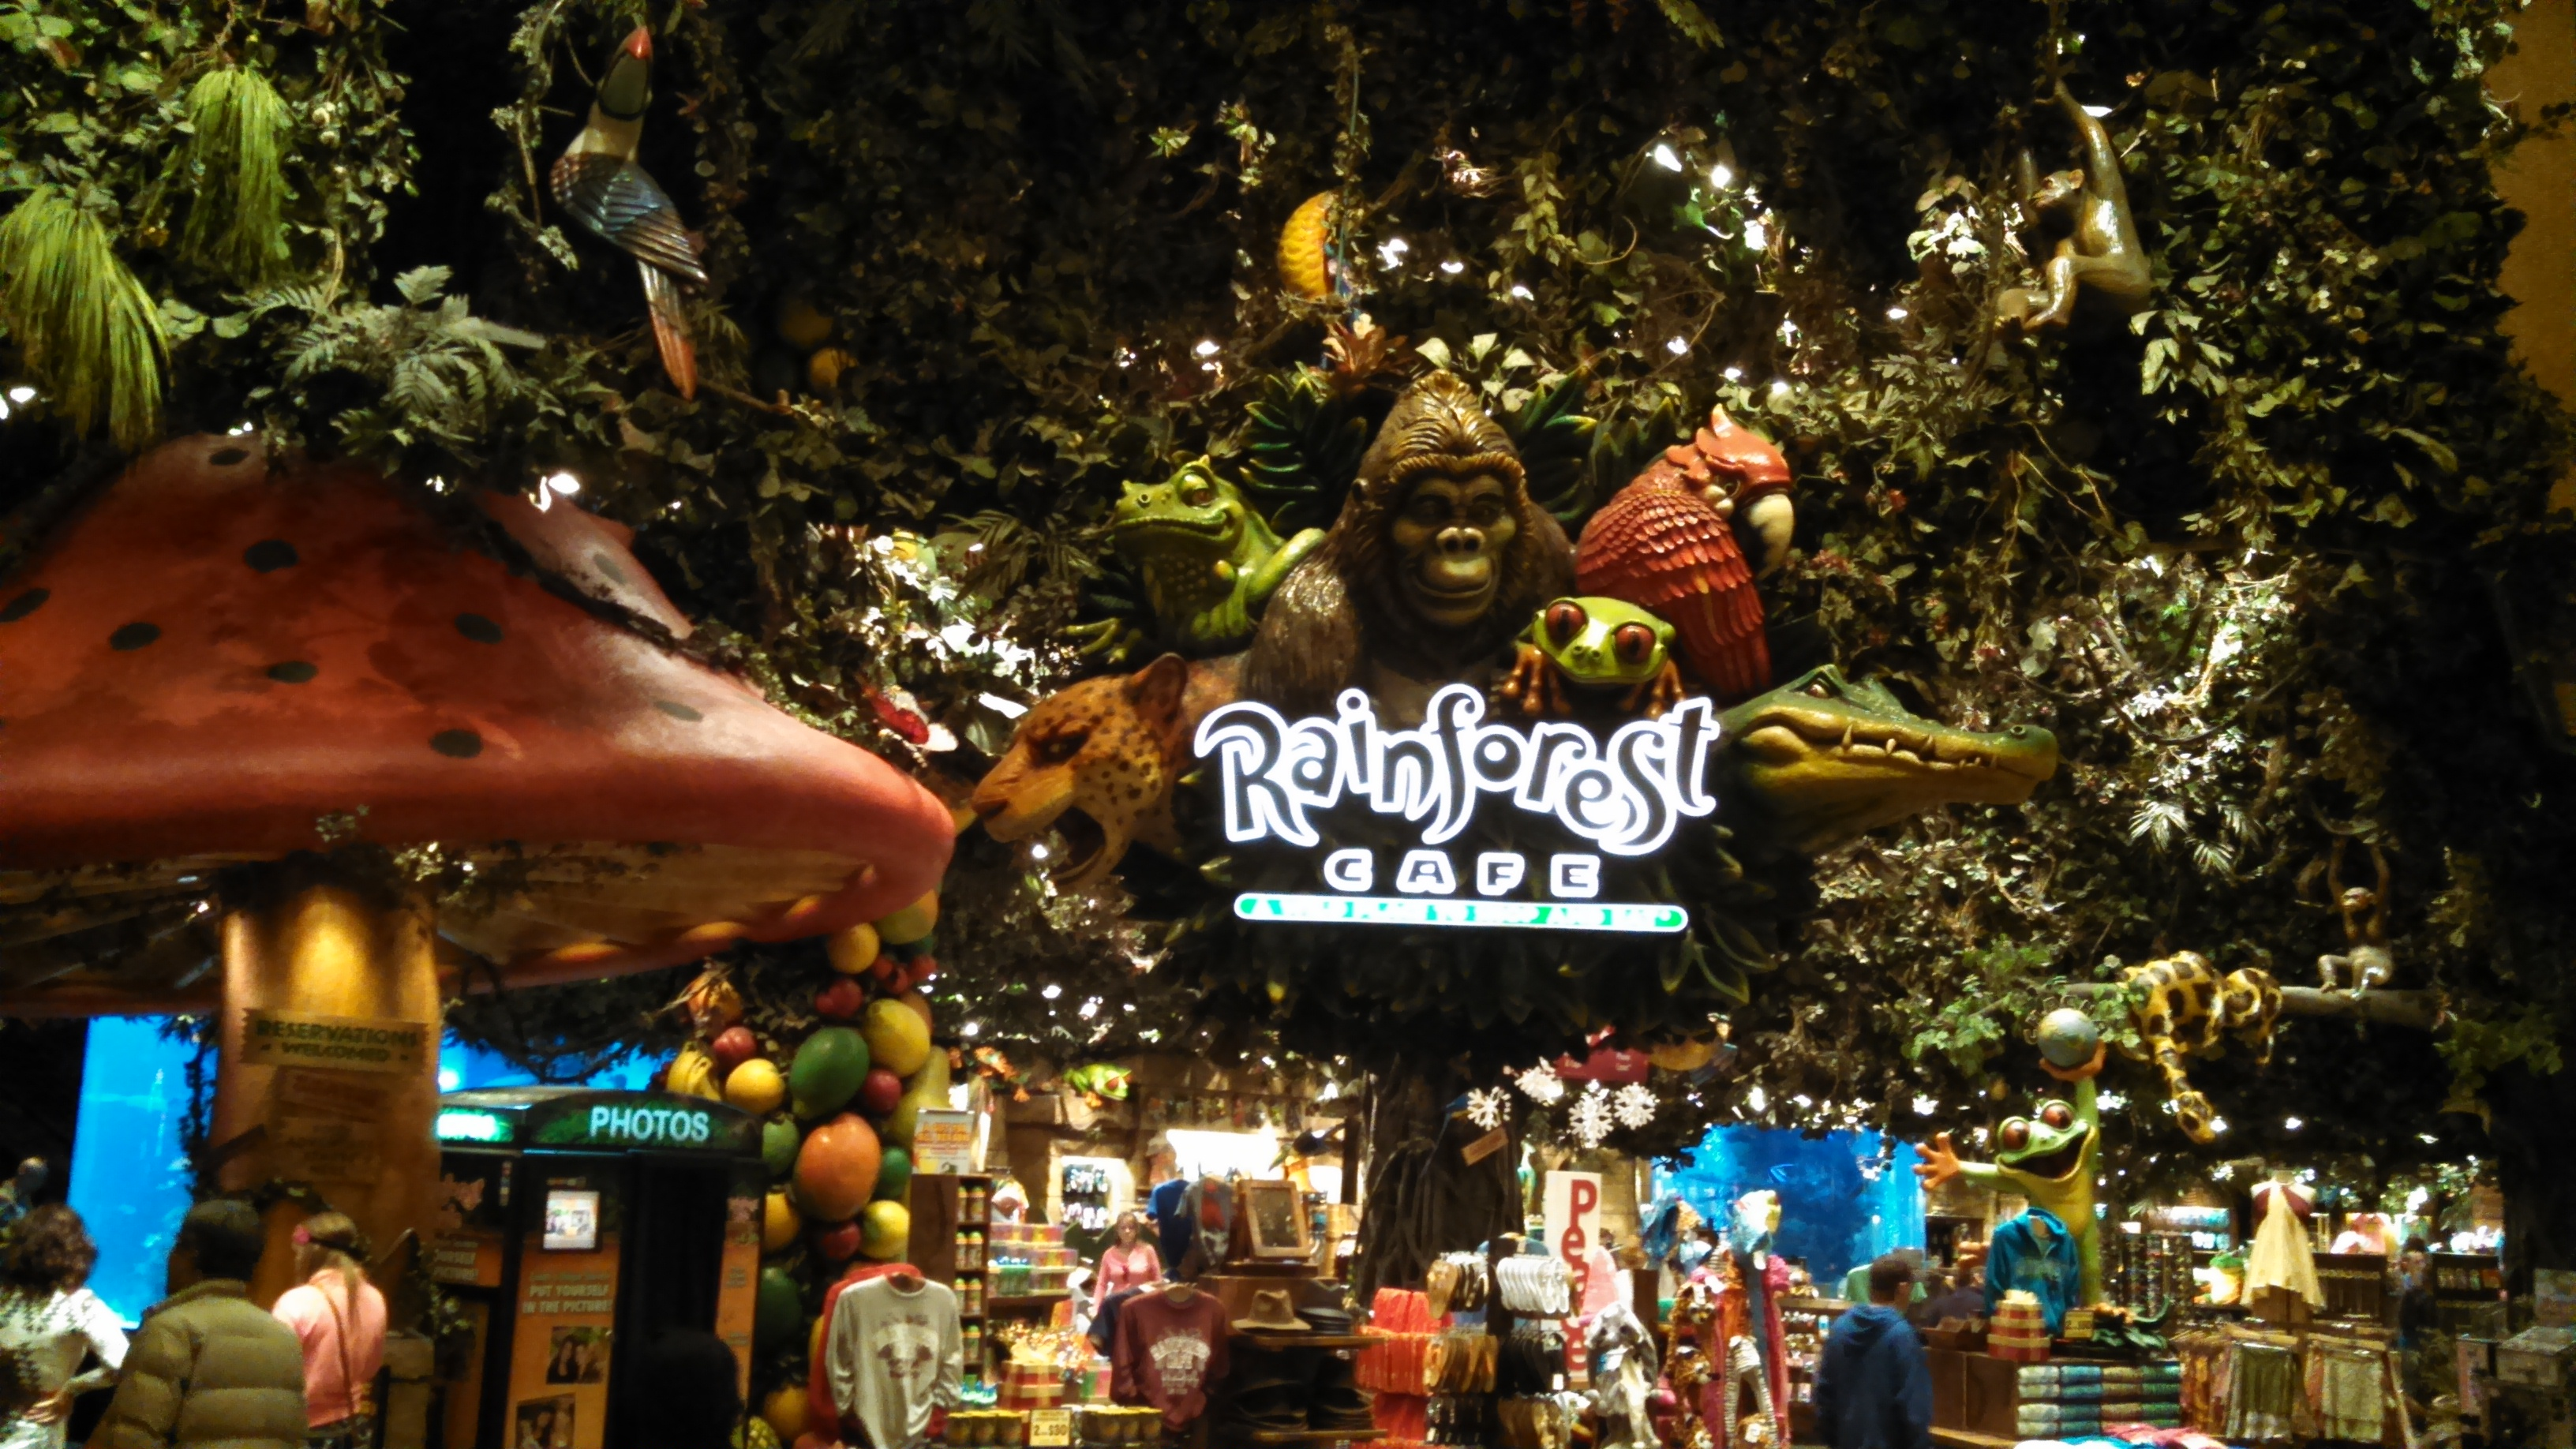 Rainforest Cafe MGM Grand